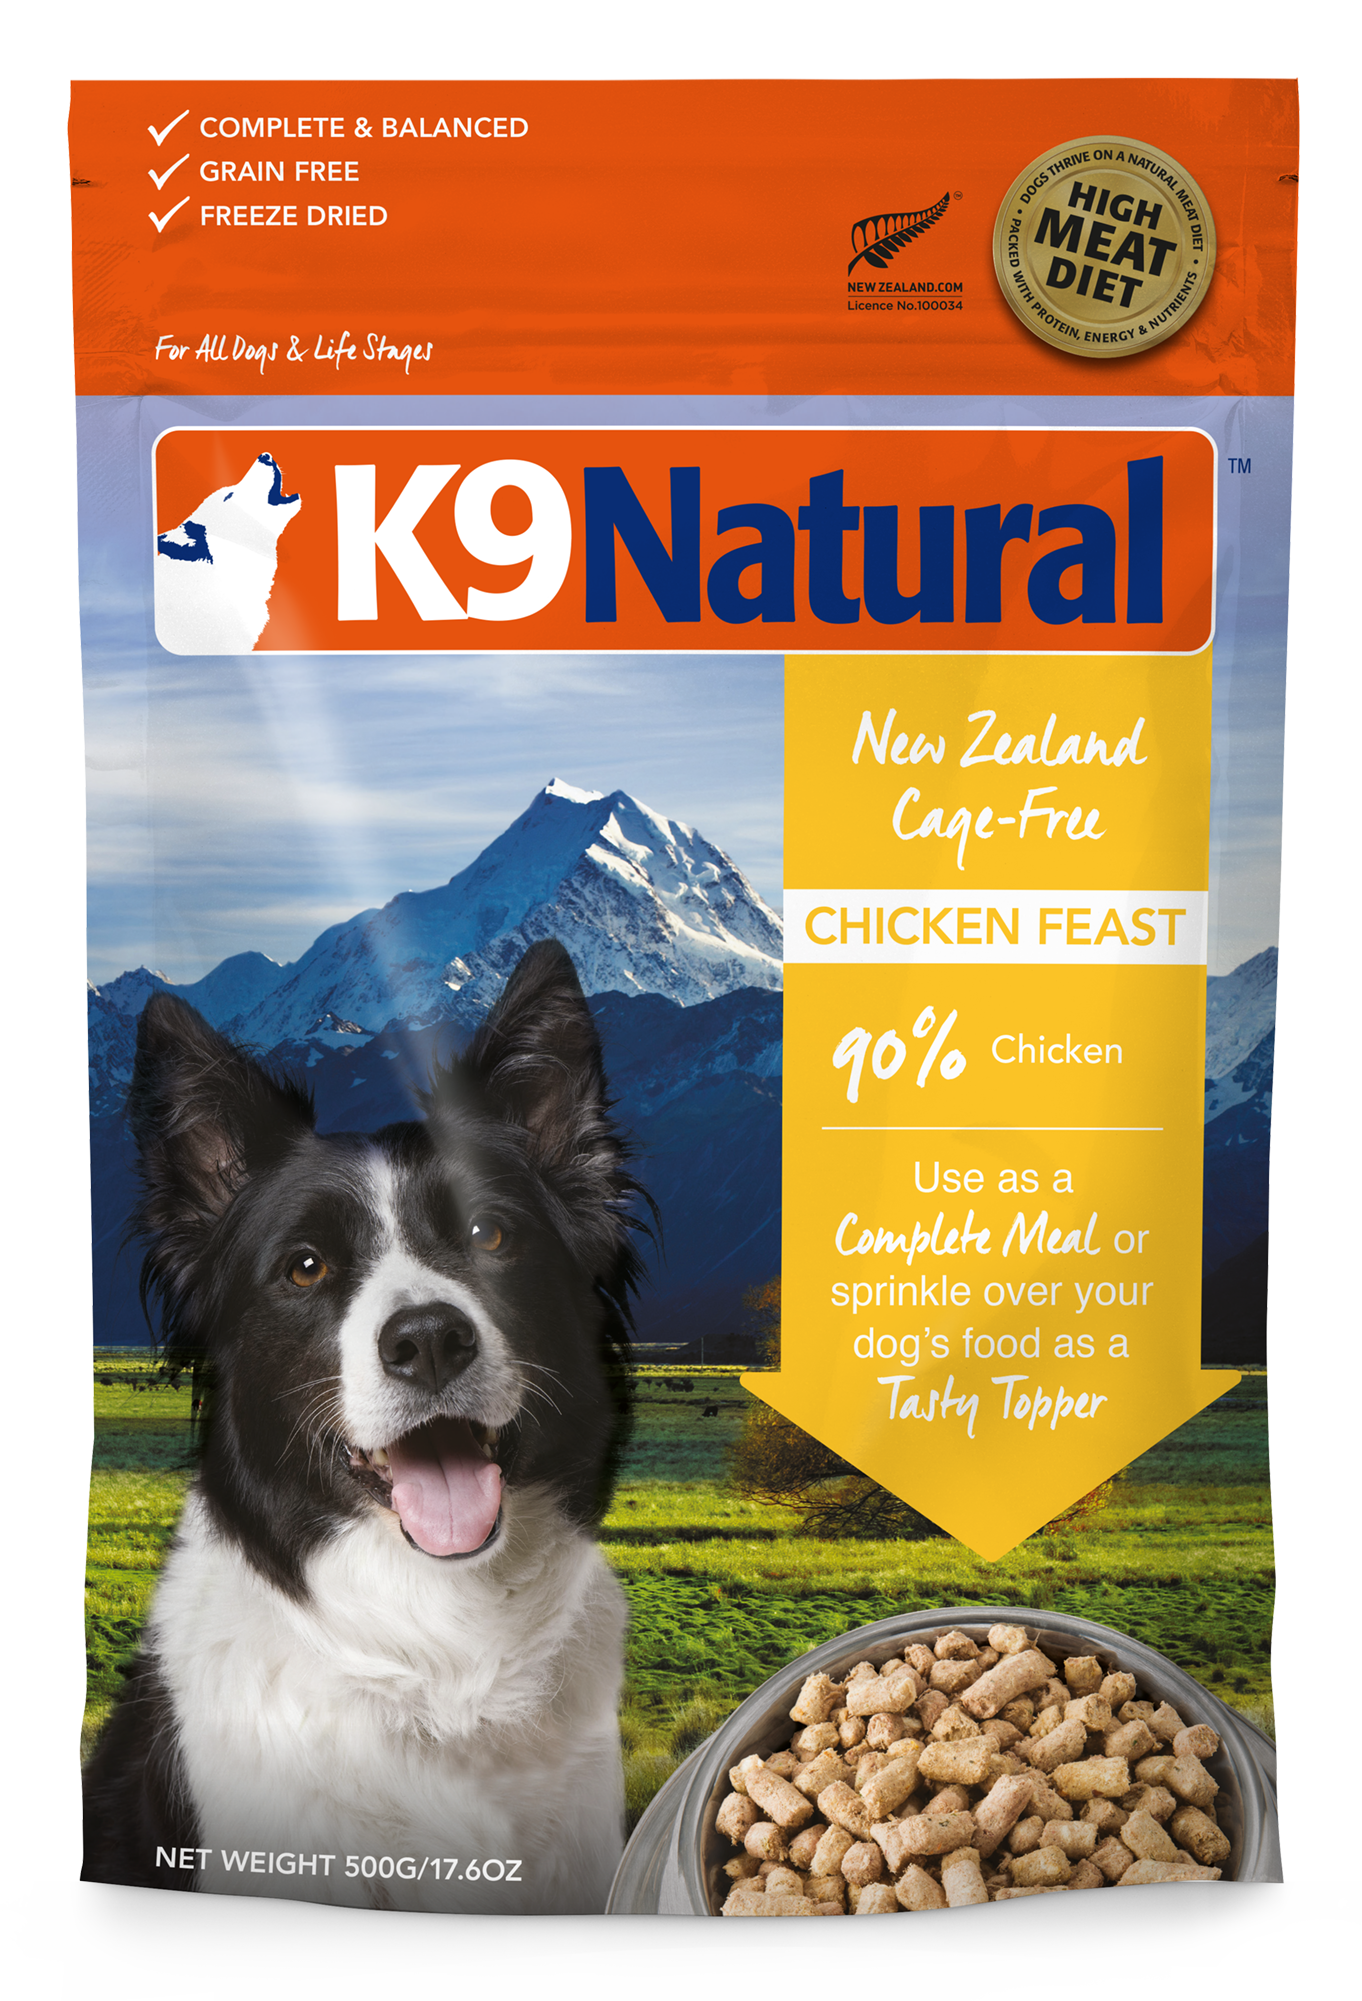 K9 Natural K9 Natural Freeze Dried Chicken Feast Dog Food 17.6oz